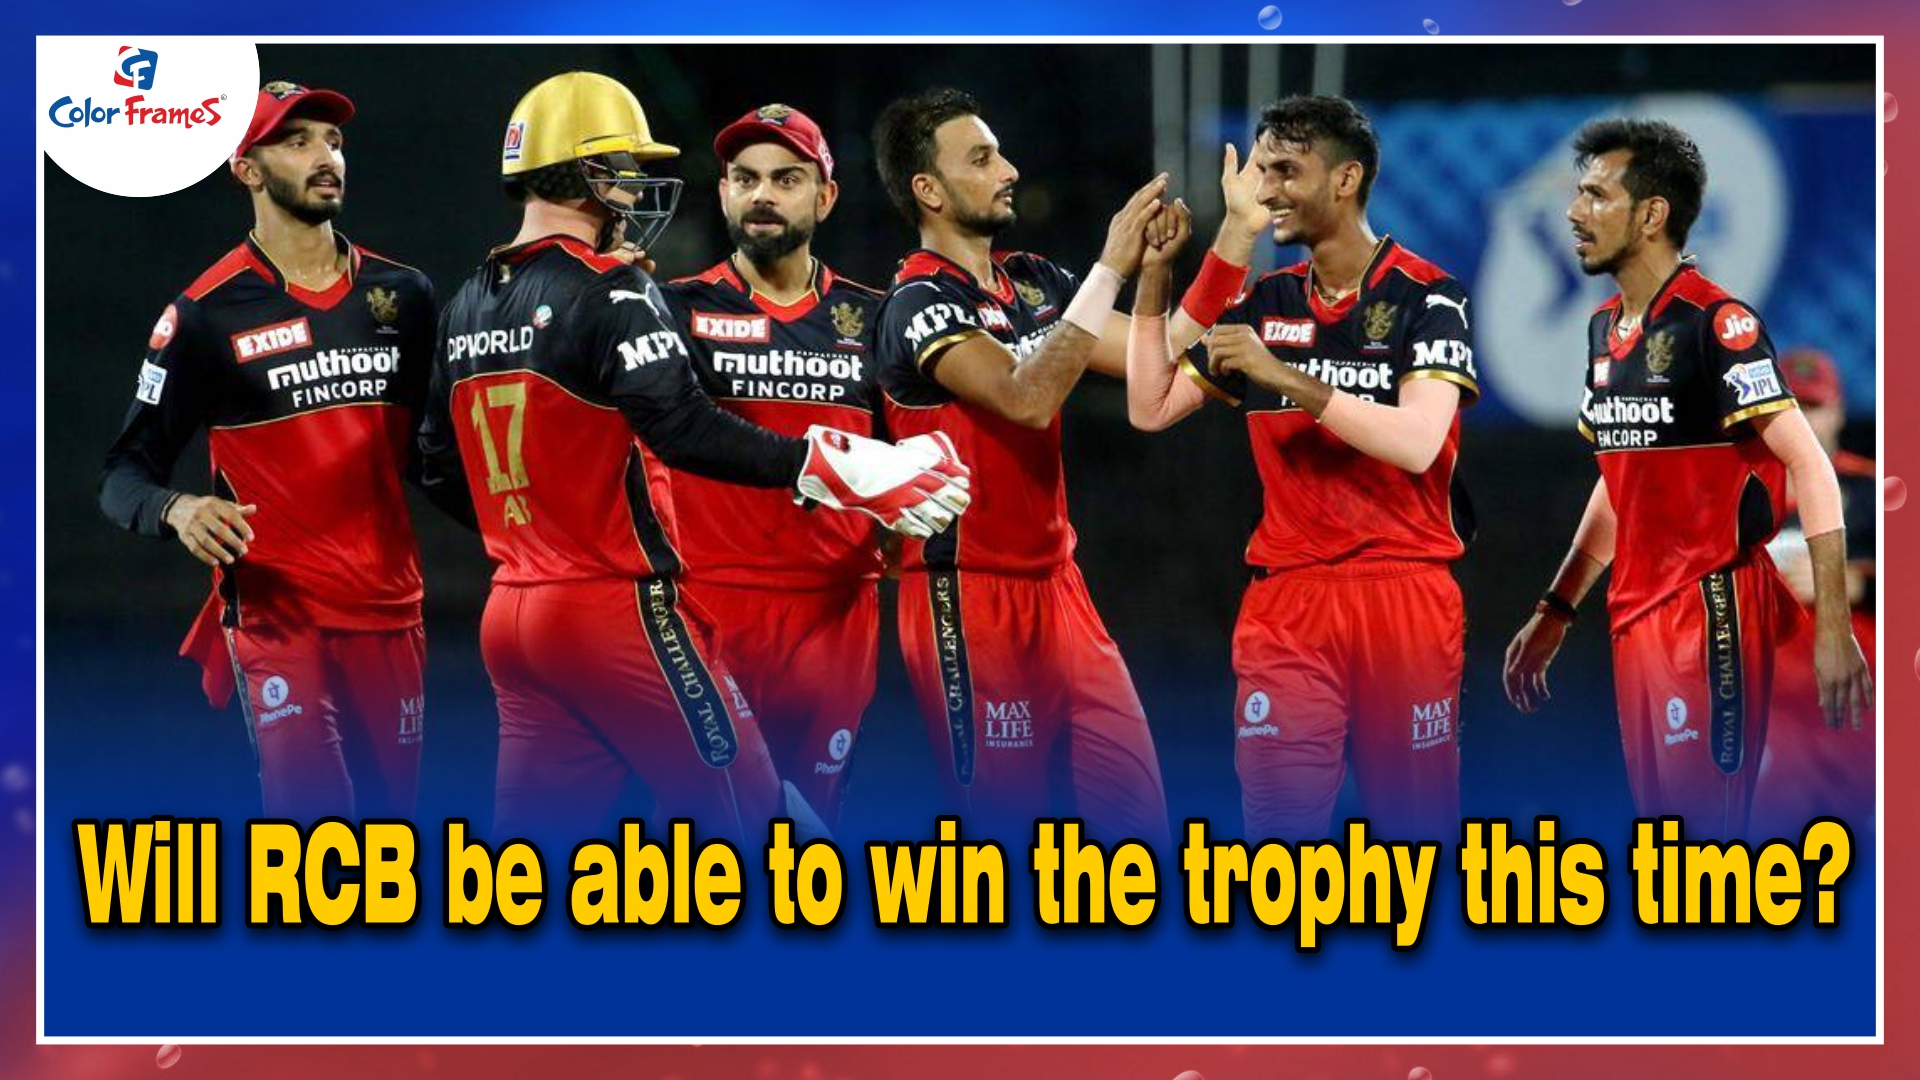 Will RCB be able to win the trophy this time?